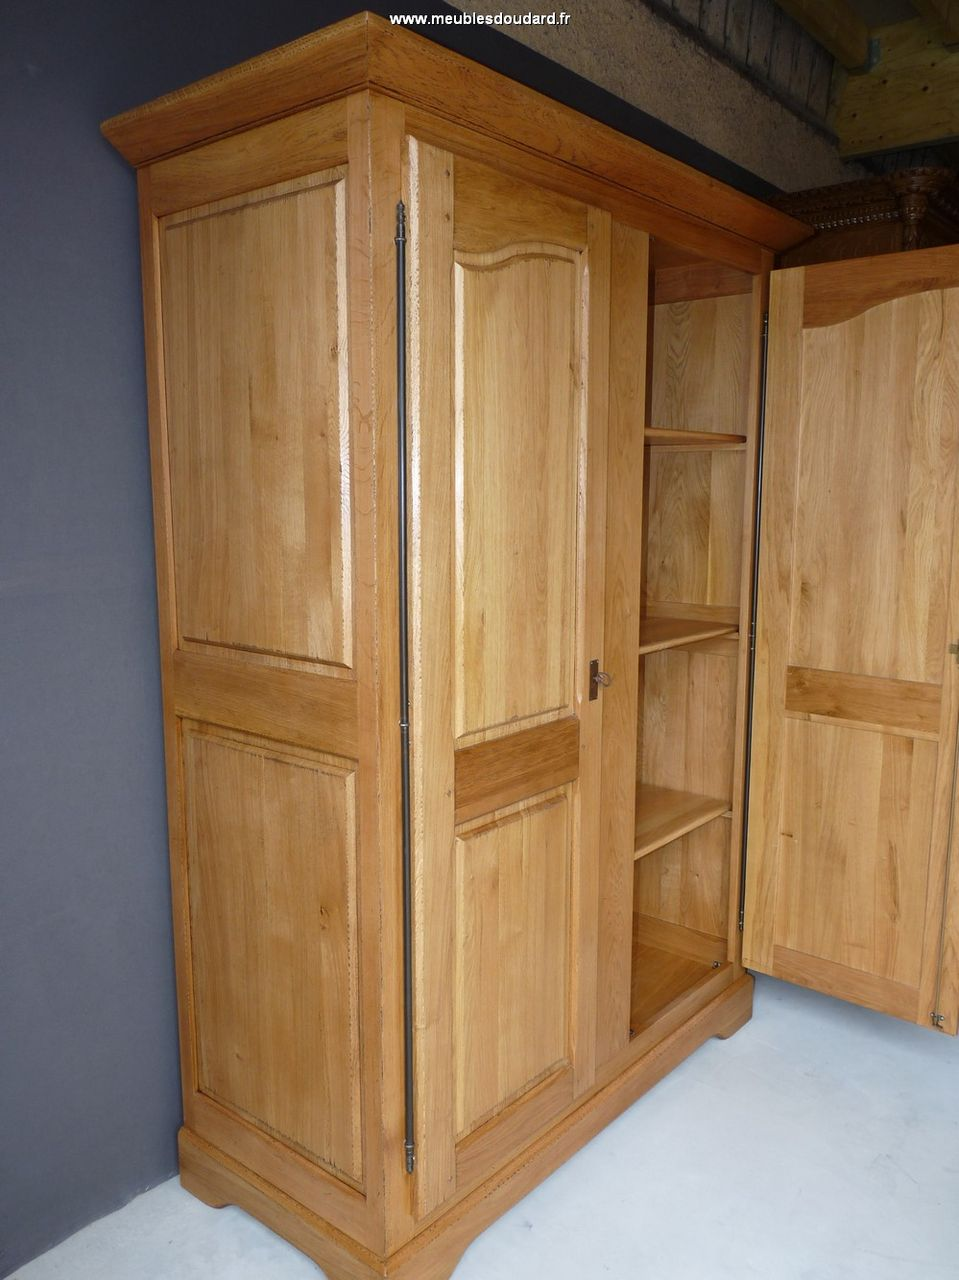 armoire en bois massif armoire de normandie armoire en ch ne rustique. Black Bedroom Furniture Sets. Home Design Ideas